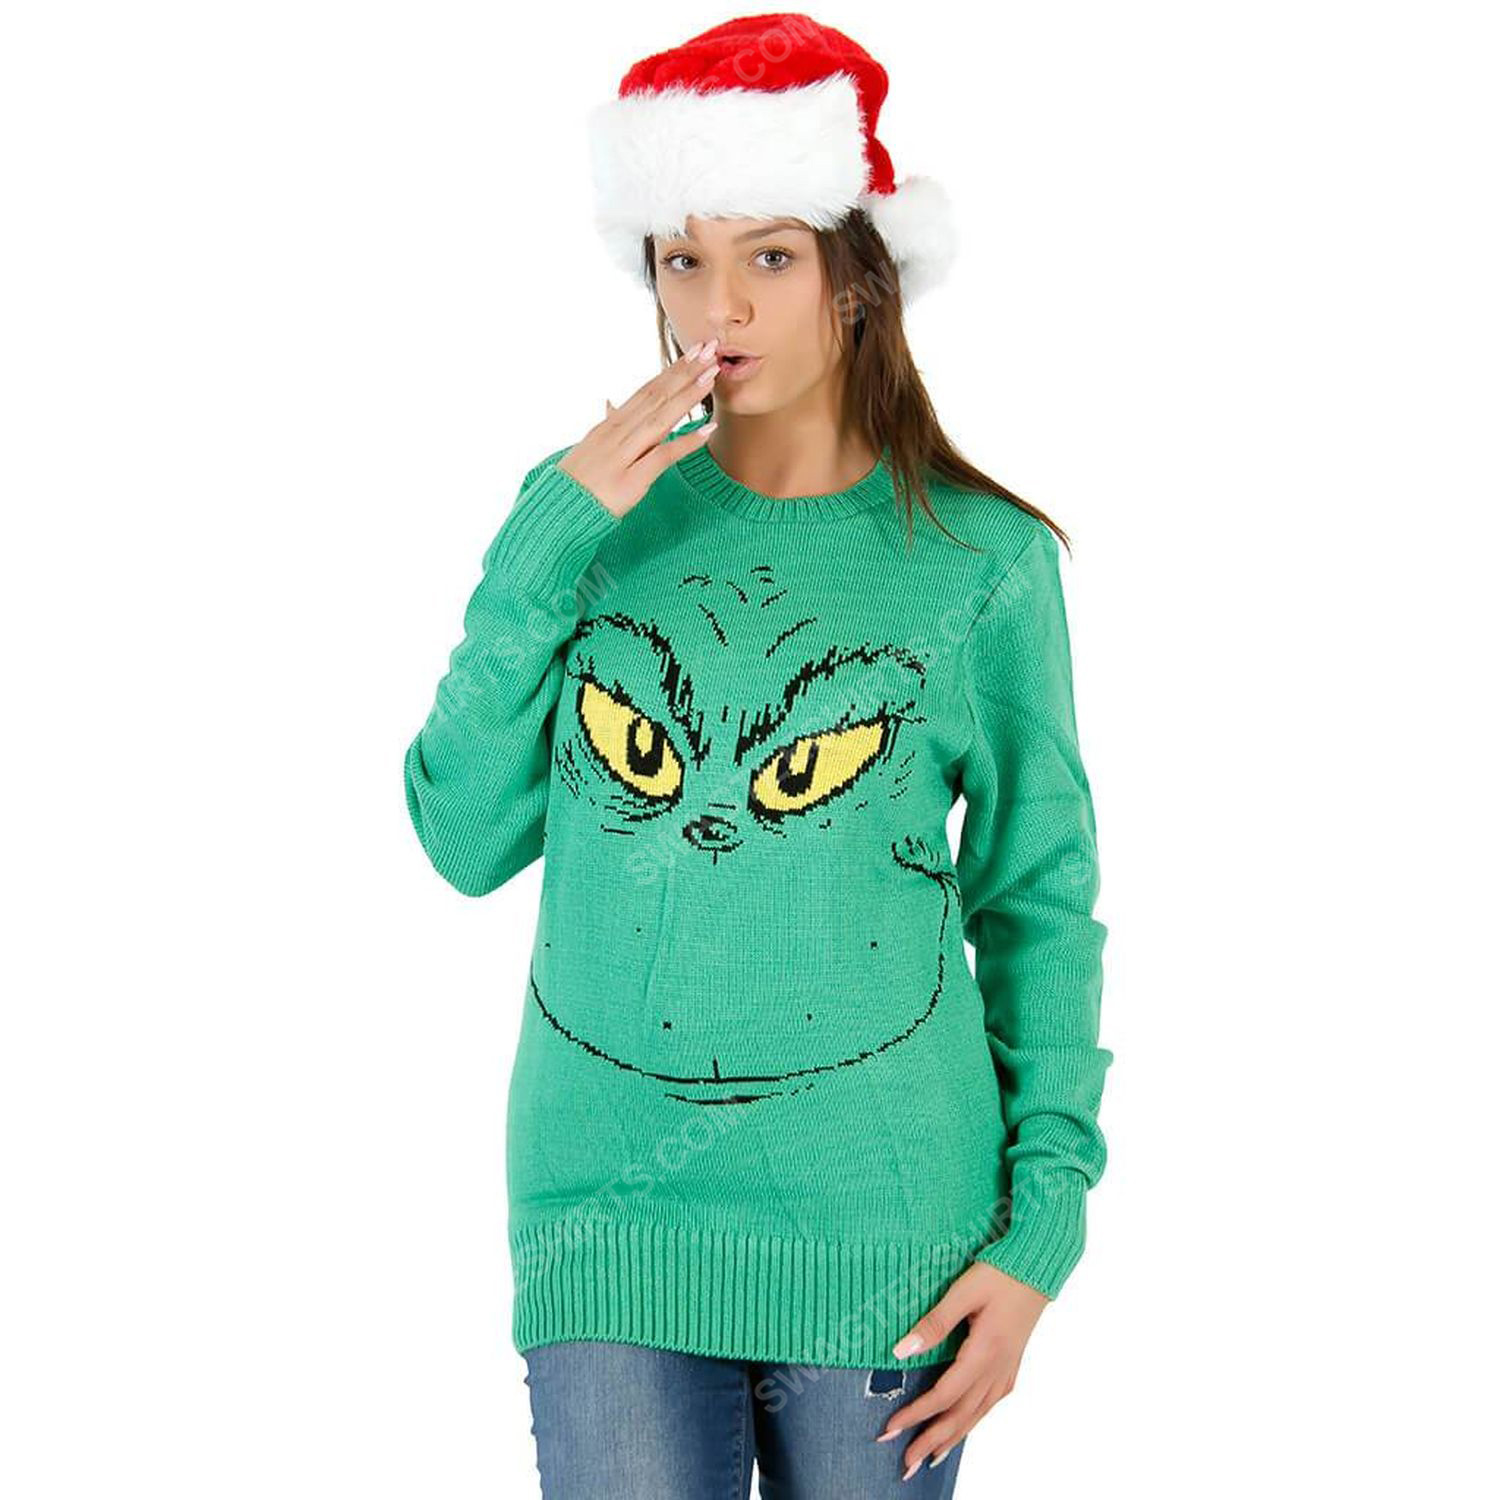 The grinch face full print ugly christmas sweater 2 - Copy